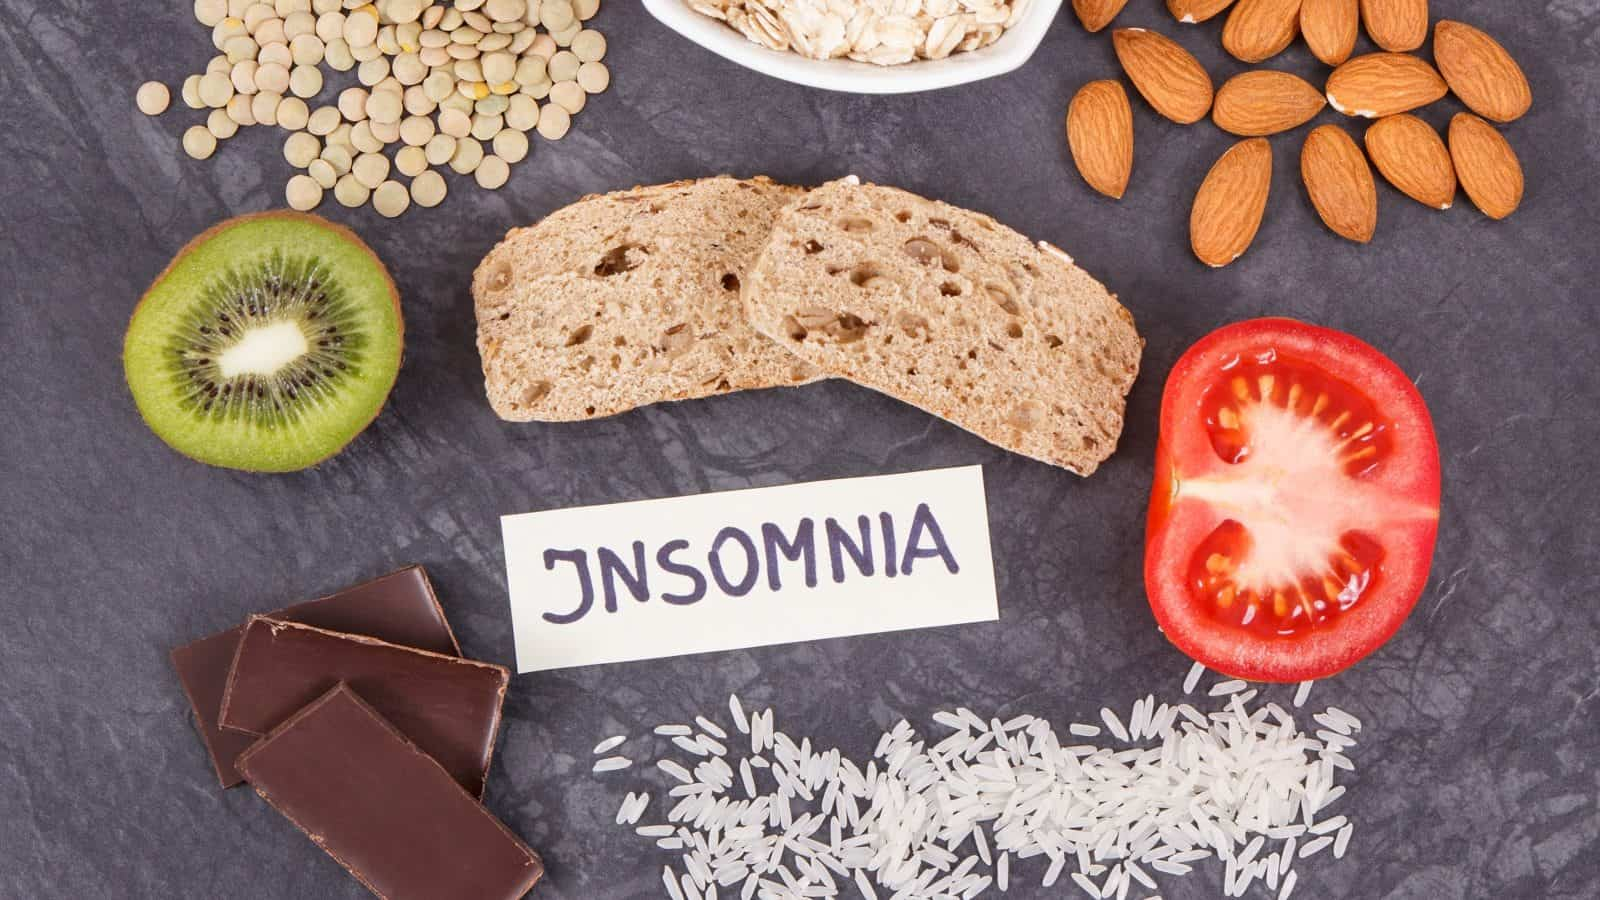 L-Tryptophan Dosage For Sleep And Sleep-Related Disorders